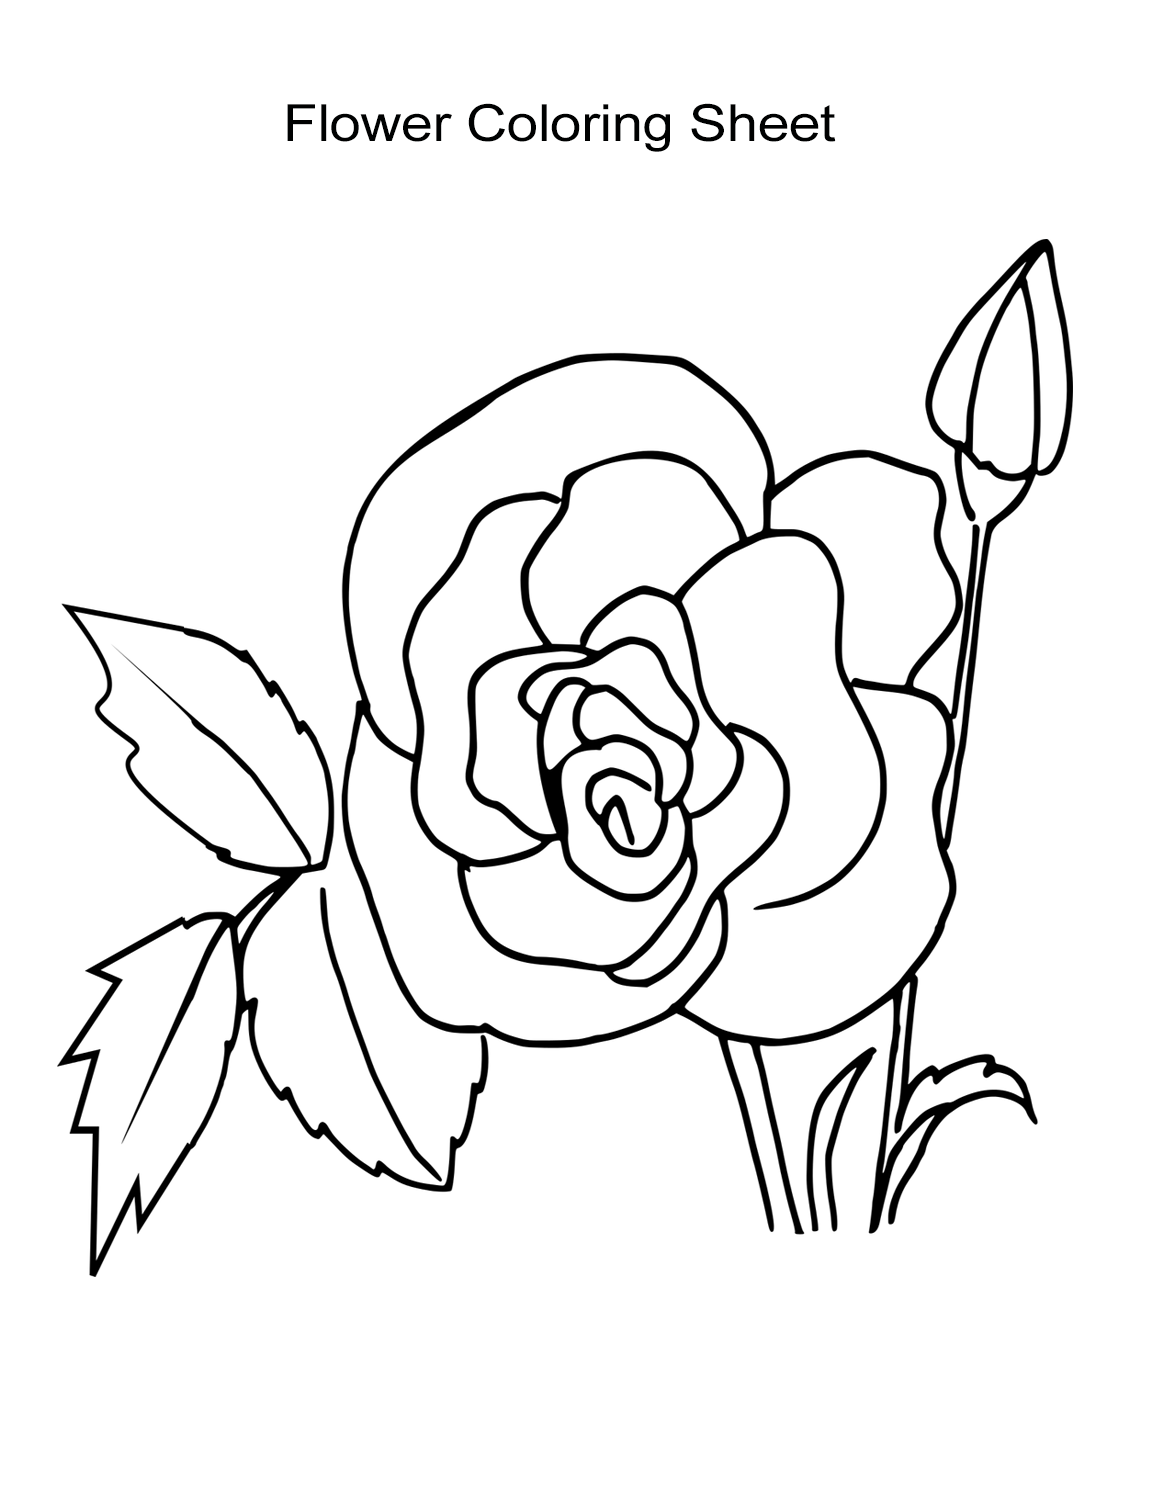 10 Flower Coloring Sheets for Girls